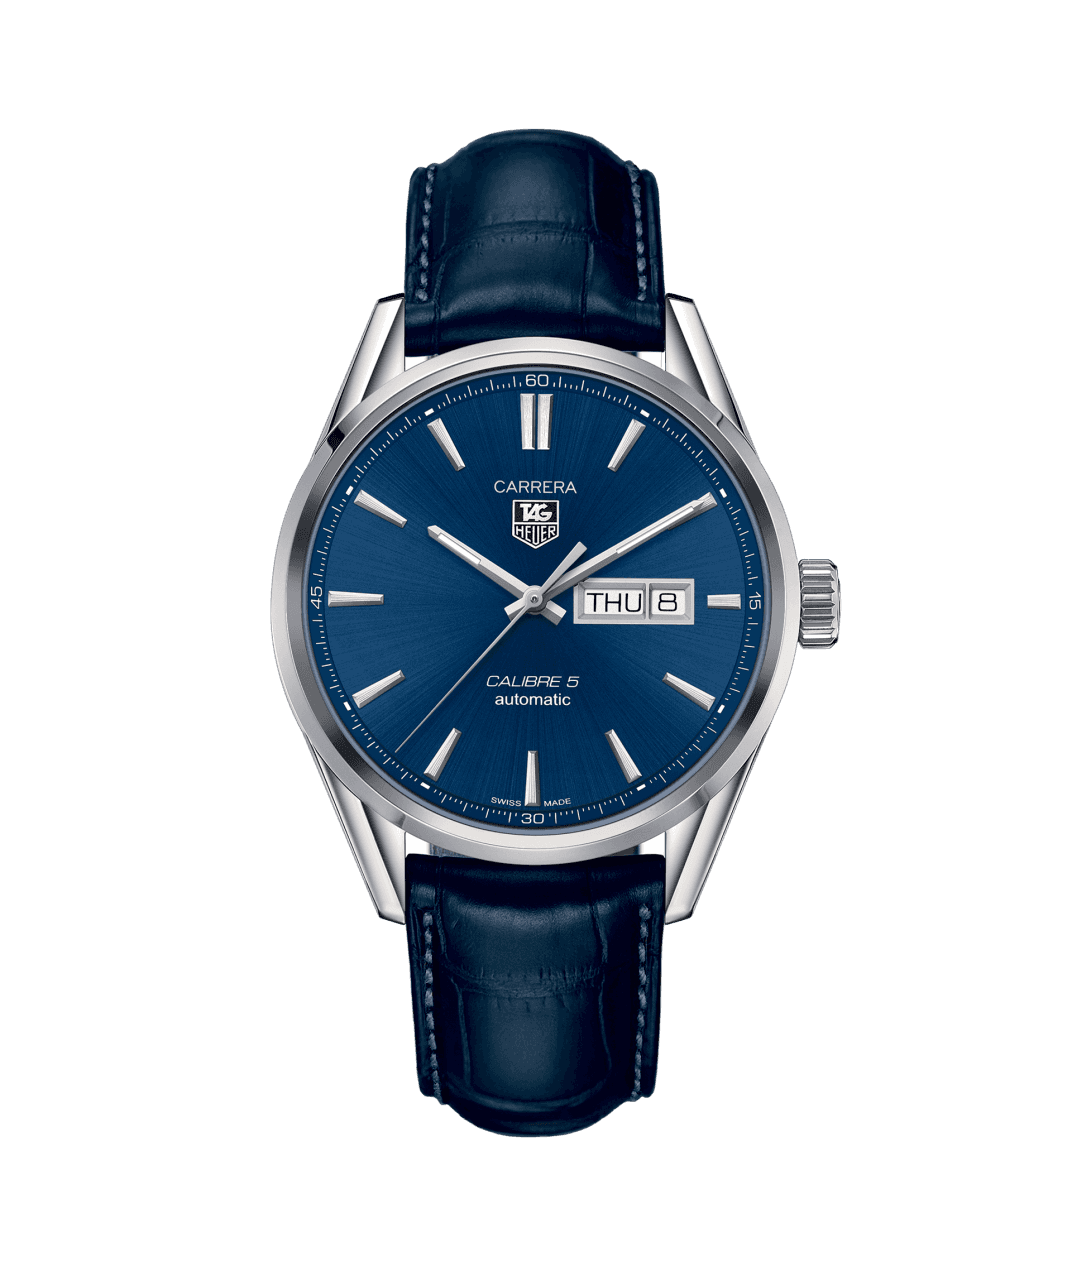 Tag-Heuer-Montre-Carrera-Calibre-5-Day-Date-Hall-of-Time-WAR201E-FC6292